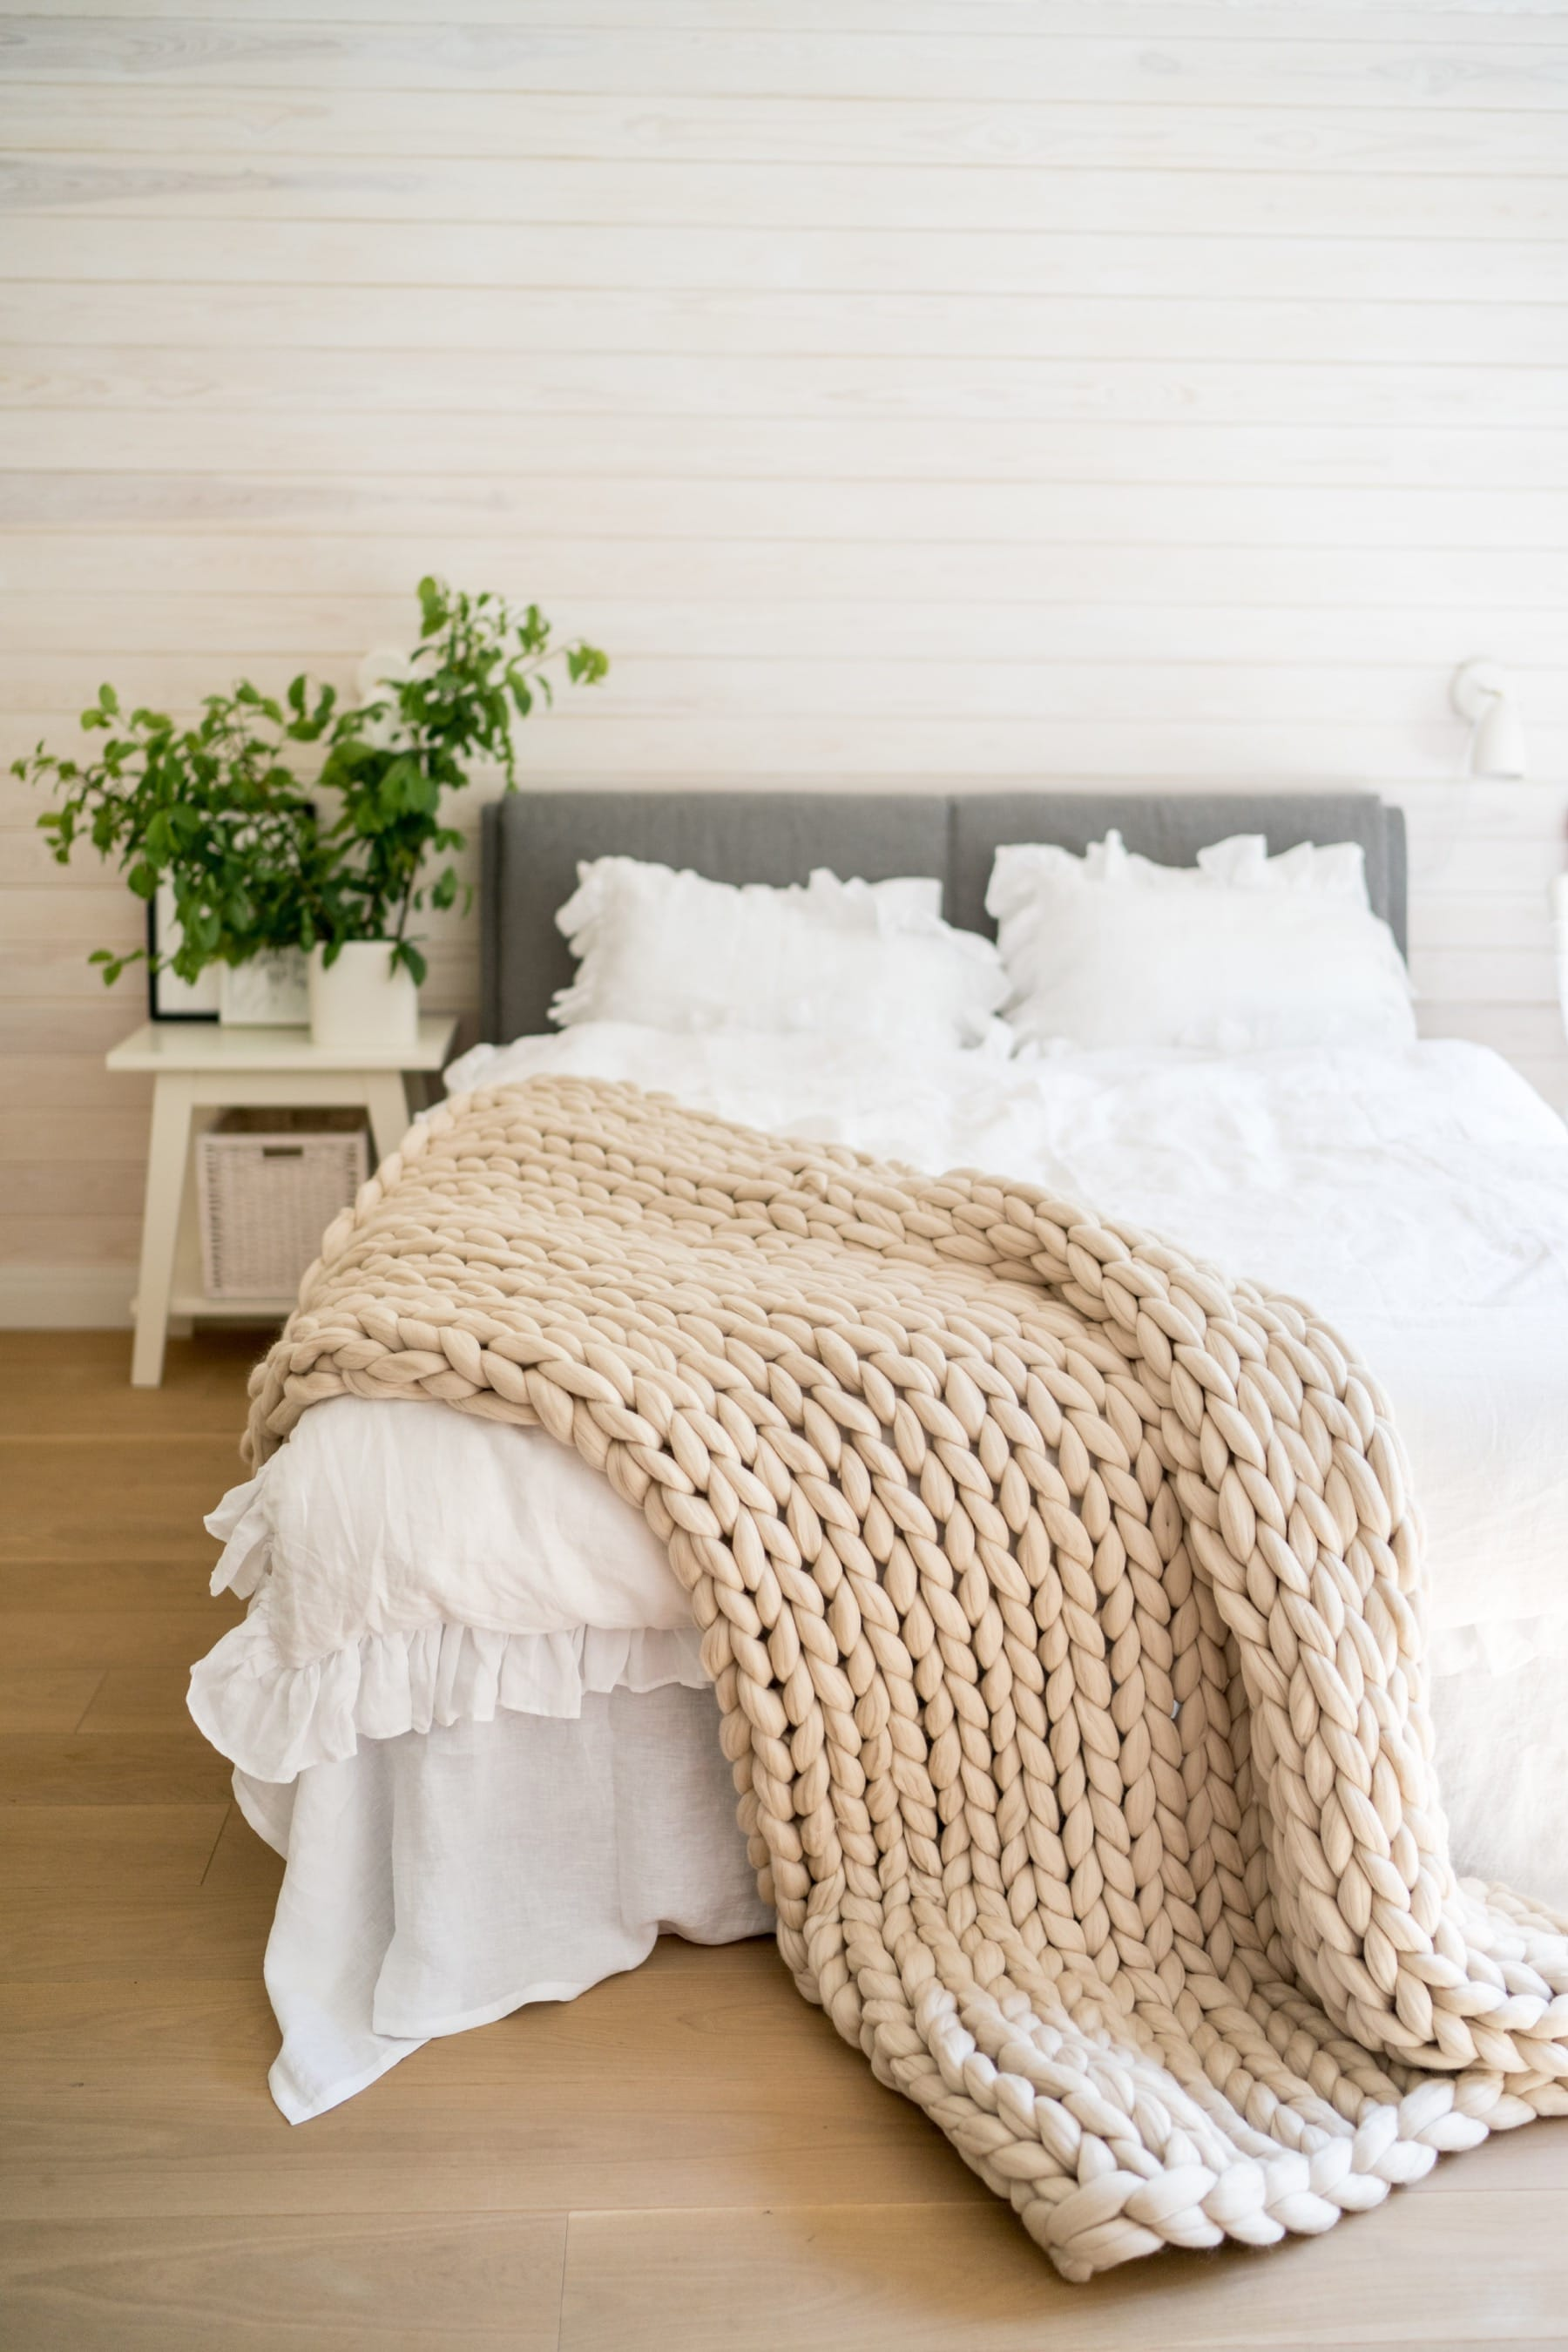 chunky knit blanket on ruffle bedding